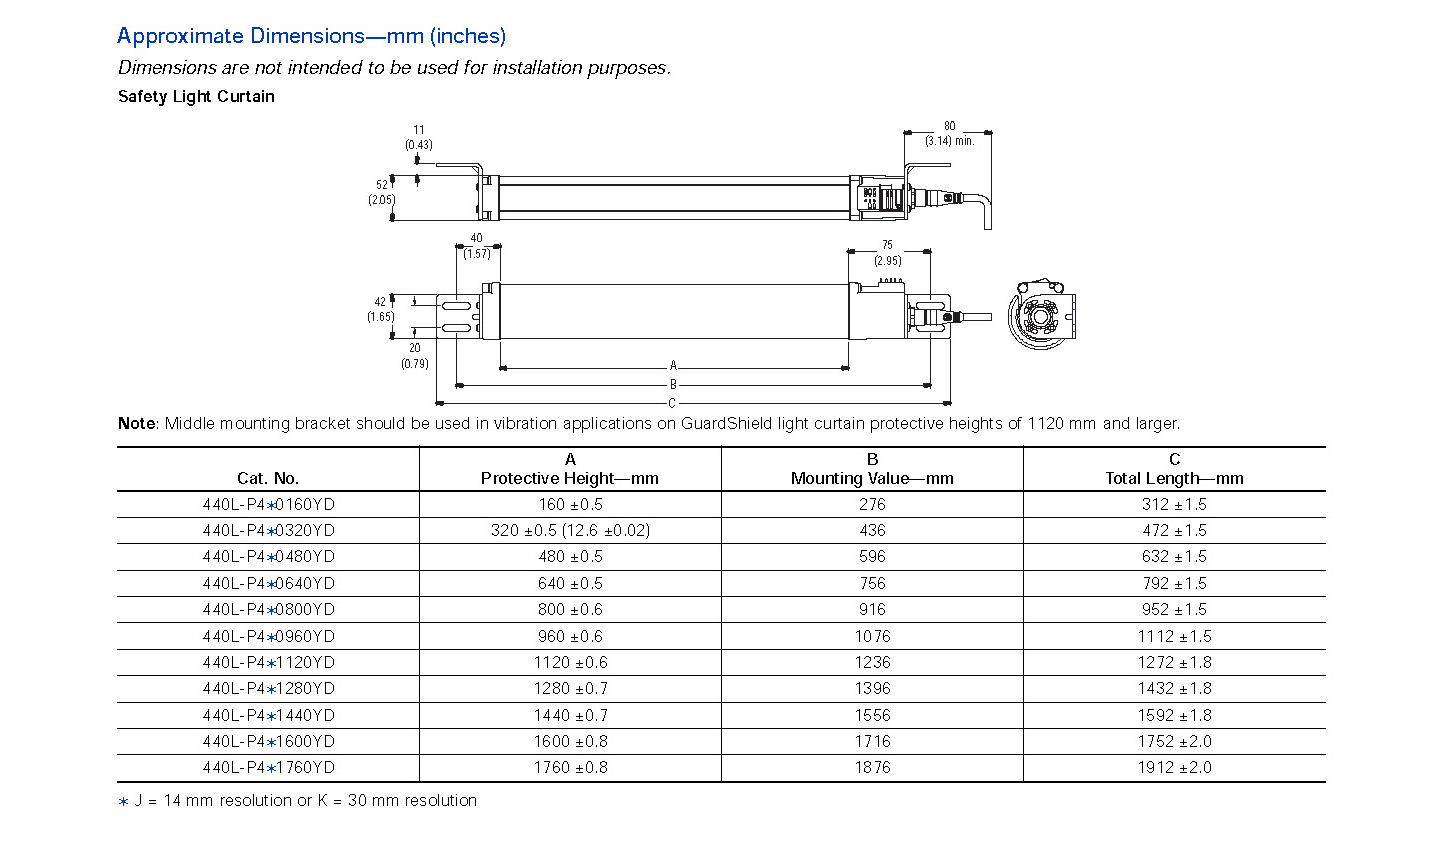 Guardshield safety light curtain res 30mm pt ht 1440mm 72 beams wiring diagram product overview asfbconference2016 Images